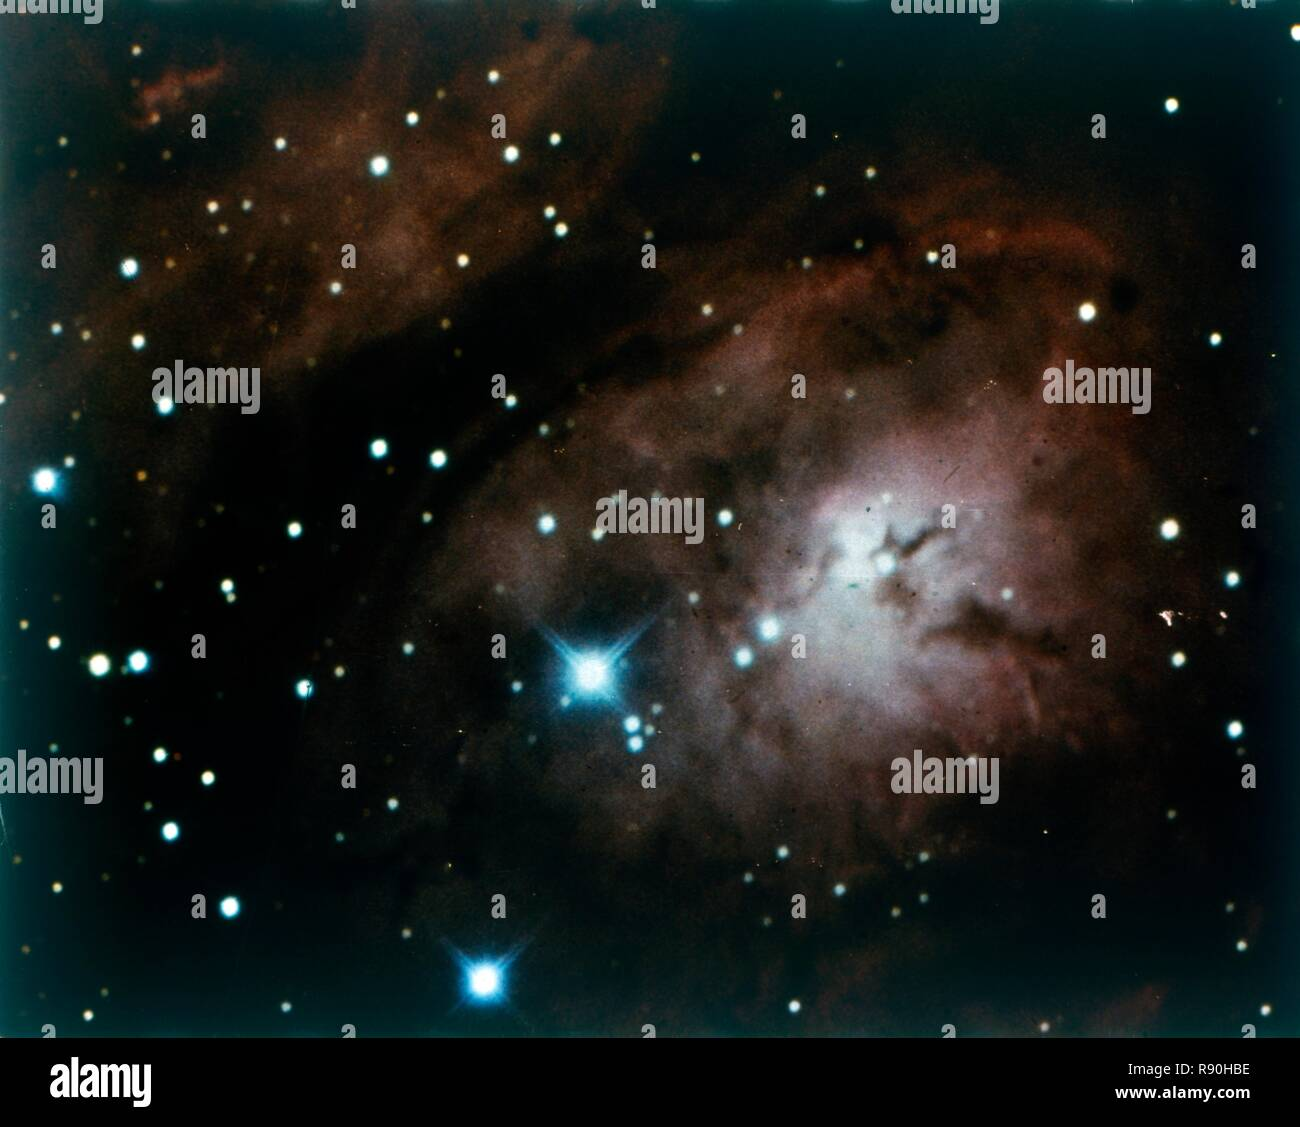 Sagittarius Constellation Stock Photos & Sagittarius